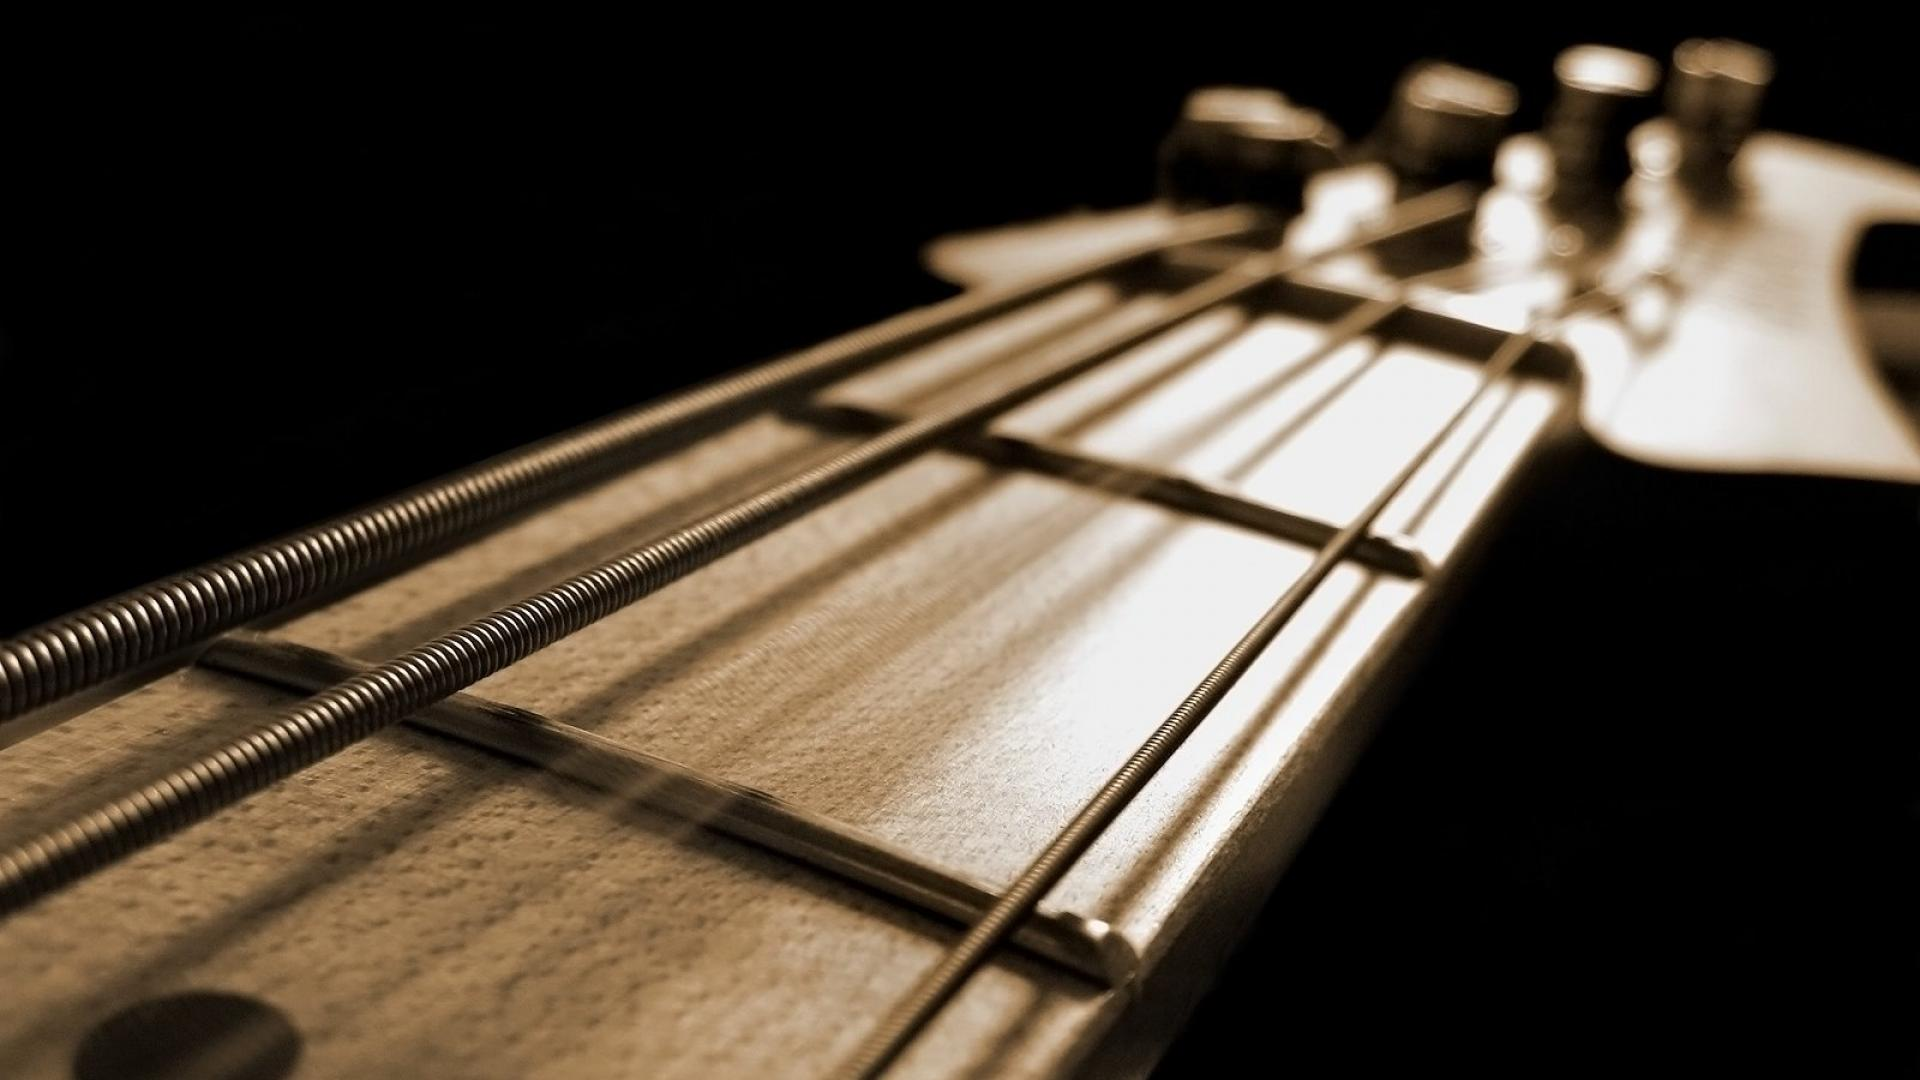 bass guitar backgrounds 36 wallpapers adorable wallpapers